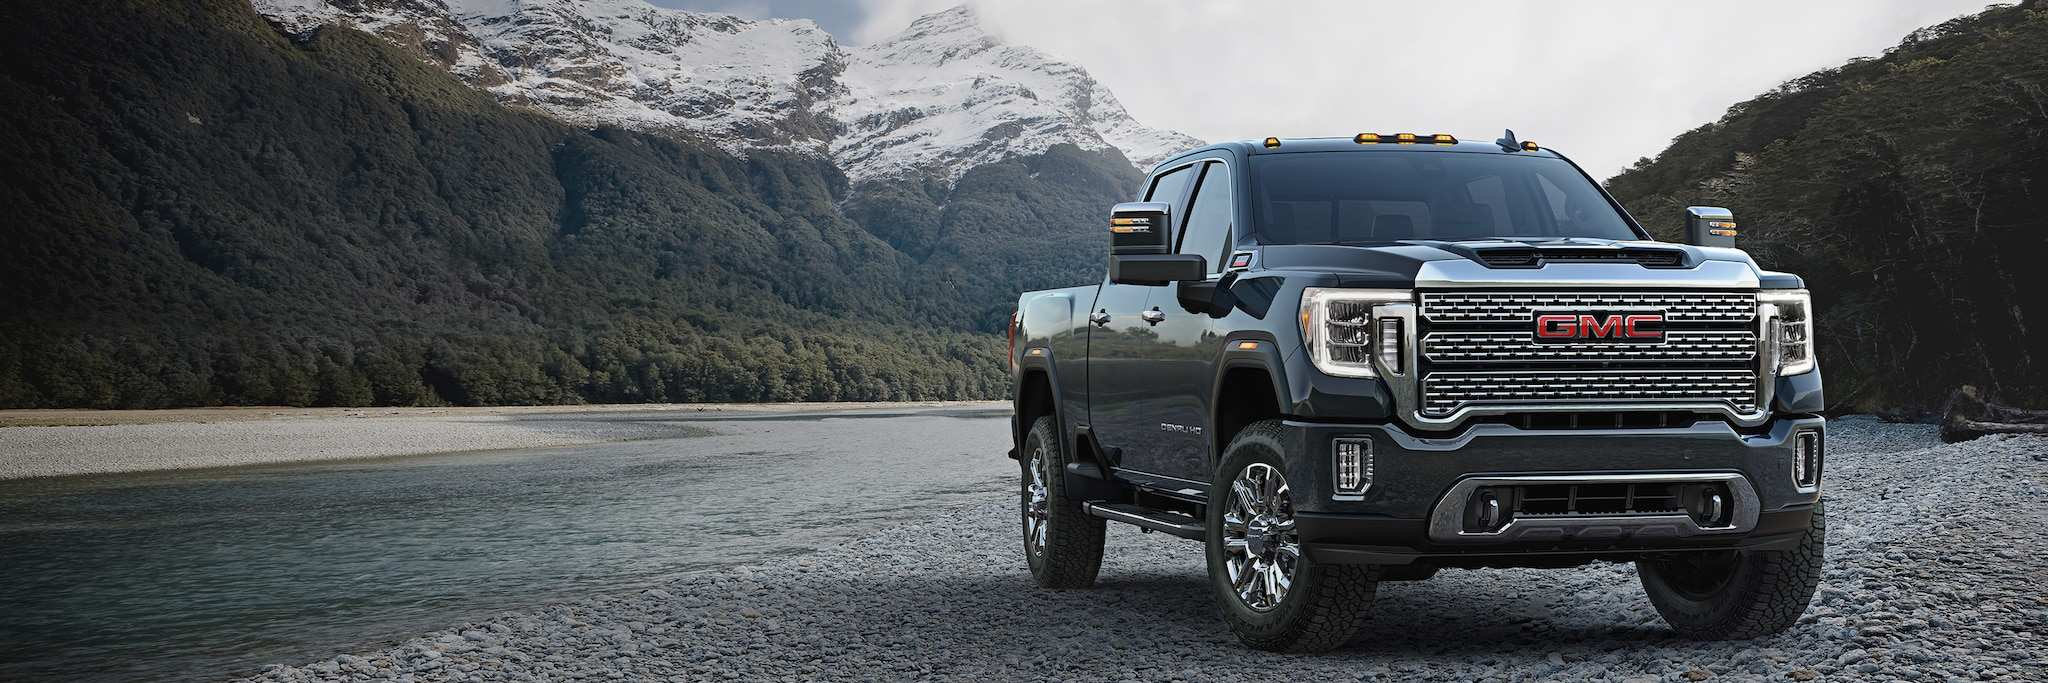 80 Best Review Release Date For 2020 Gmc 2500 Engine for Release Date For 2020 Gmc 2500